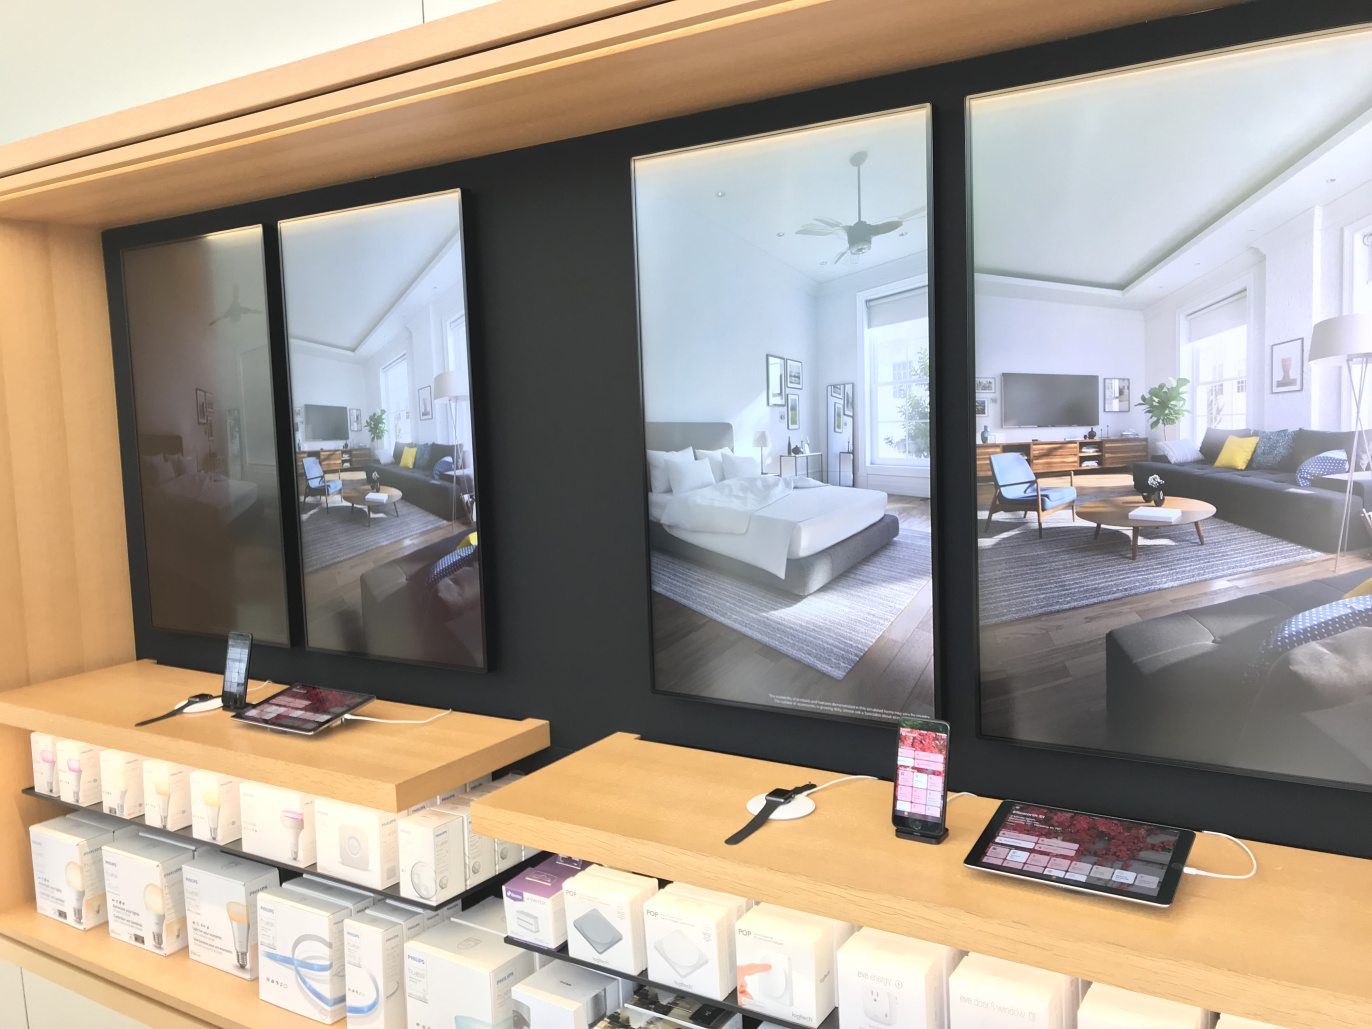 Demostración de HomeKit en una Apple Store